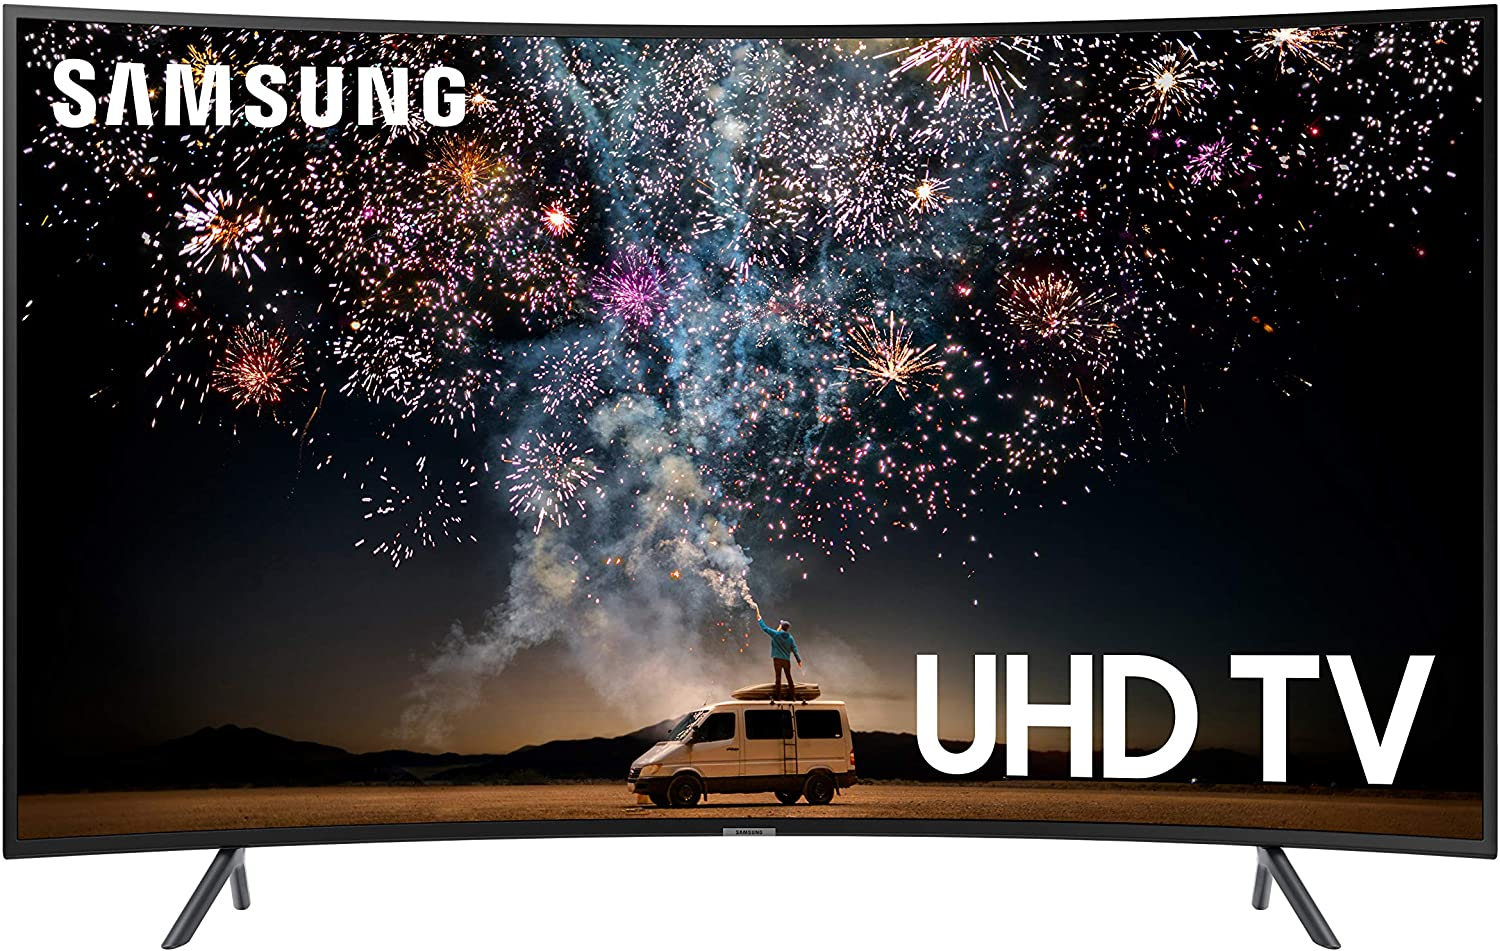 "Curved 55"" Samsung RU7300 4K UHD TV is now priced at $700"